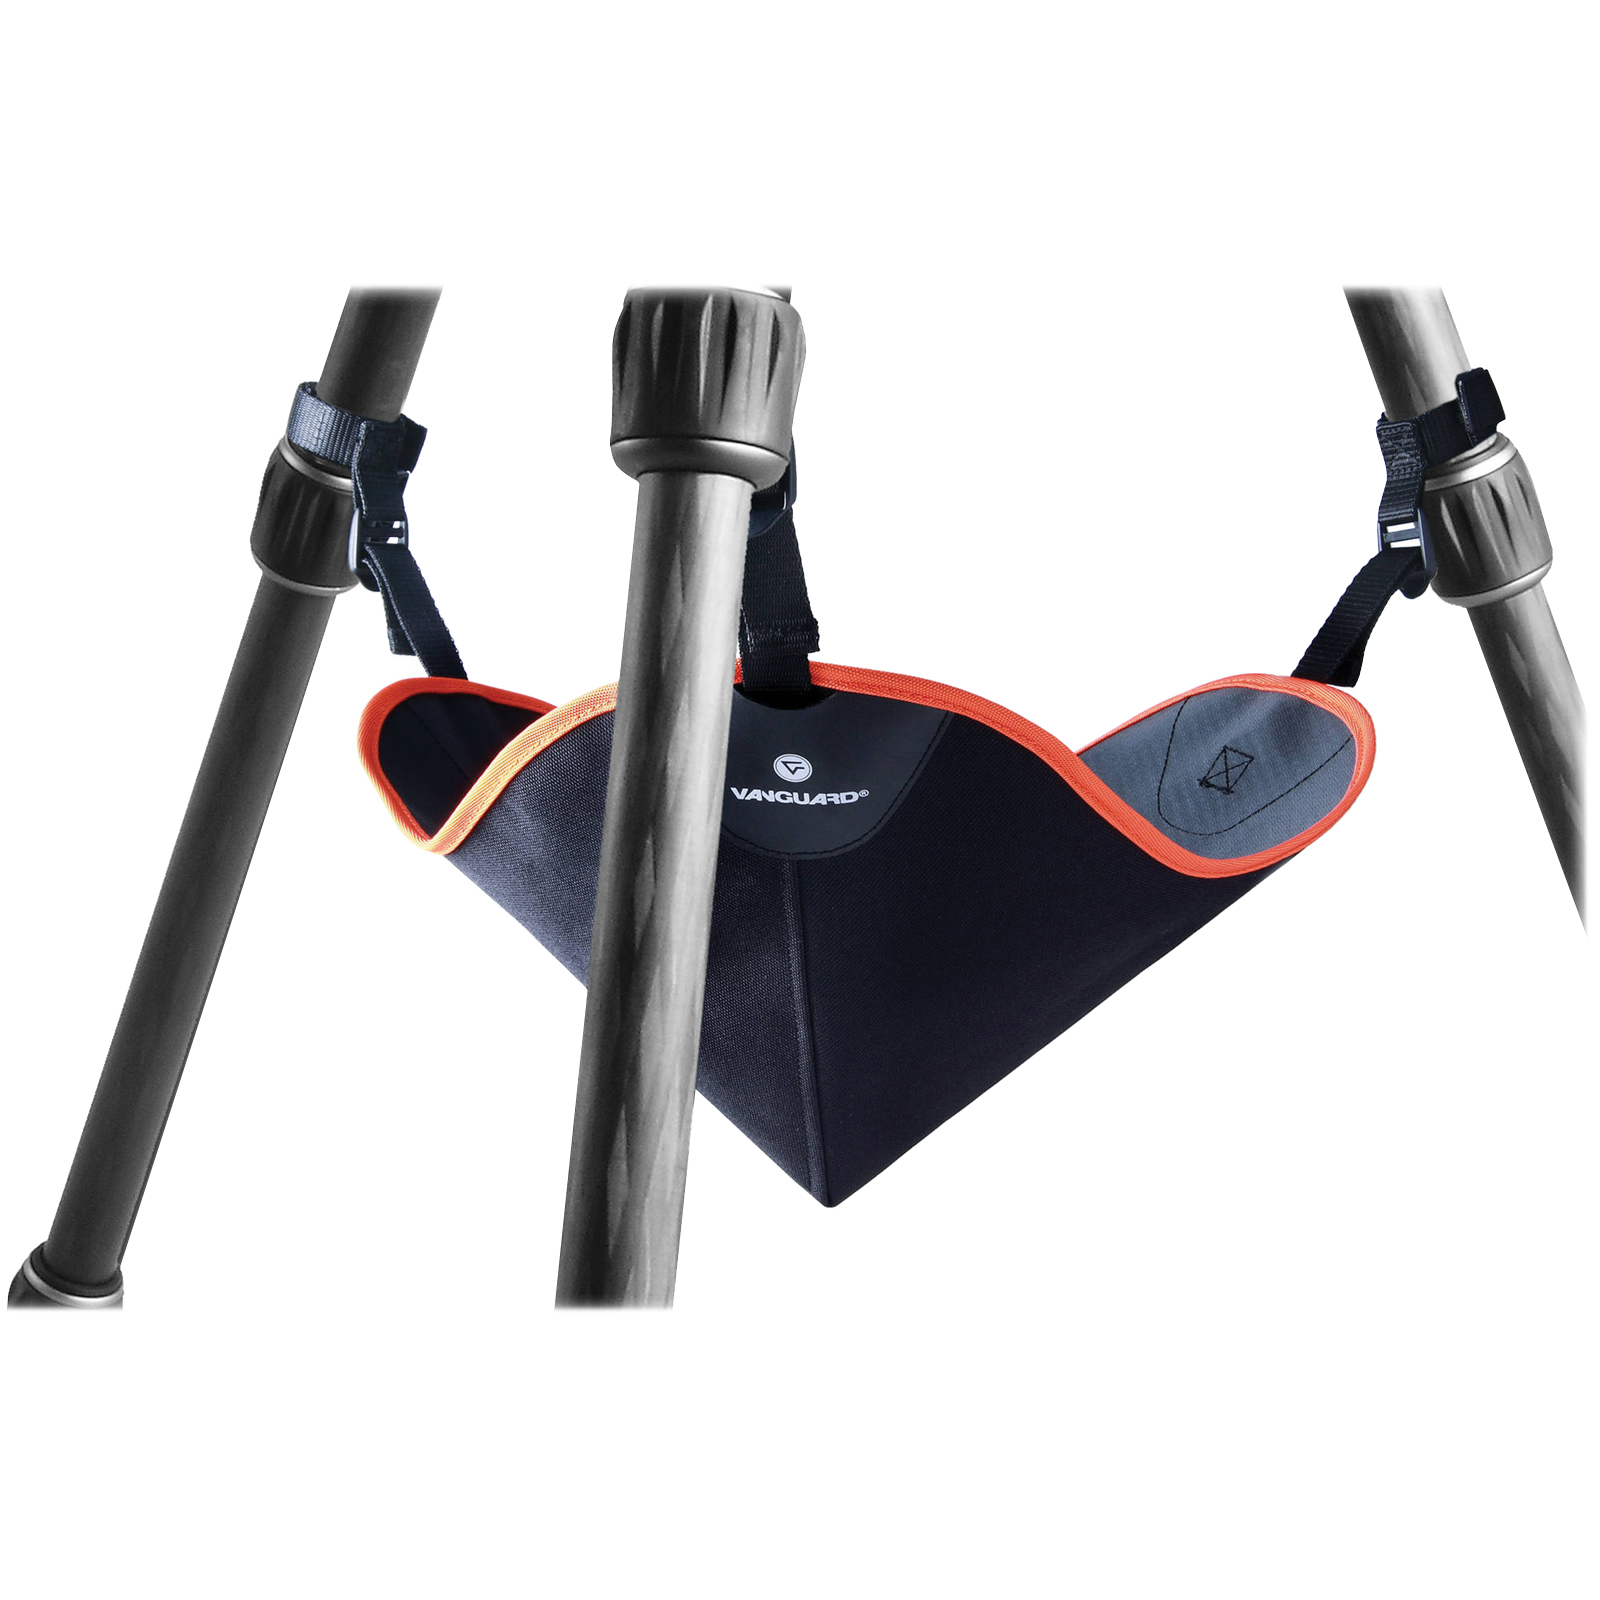 Vanguard Veo 2 265cb 59 Carbon Fiber Tripod With Bh 50 Ball Head Case Stone Bag Flash Diffusers Cleaning Kit